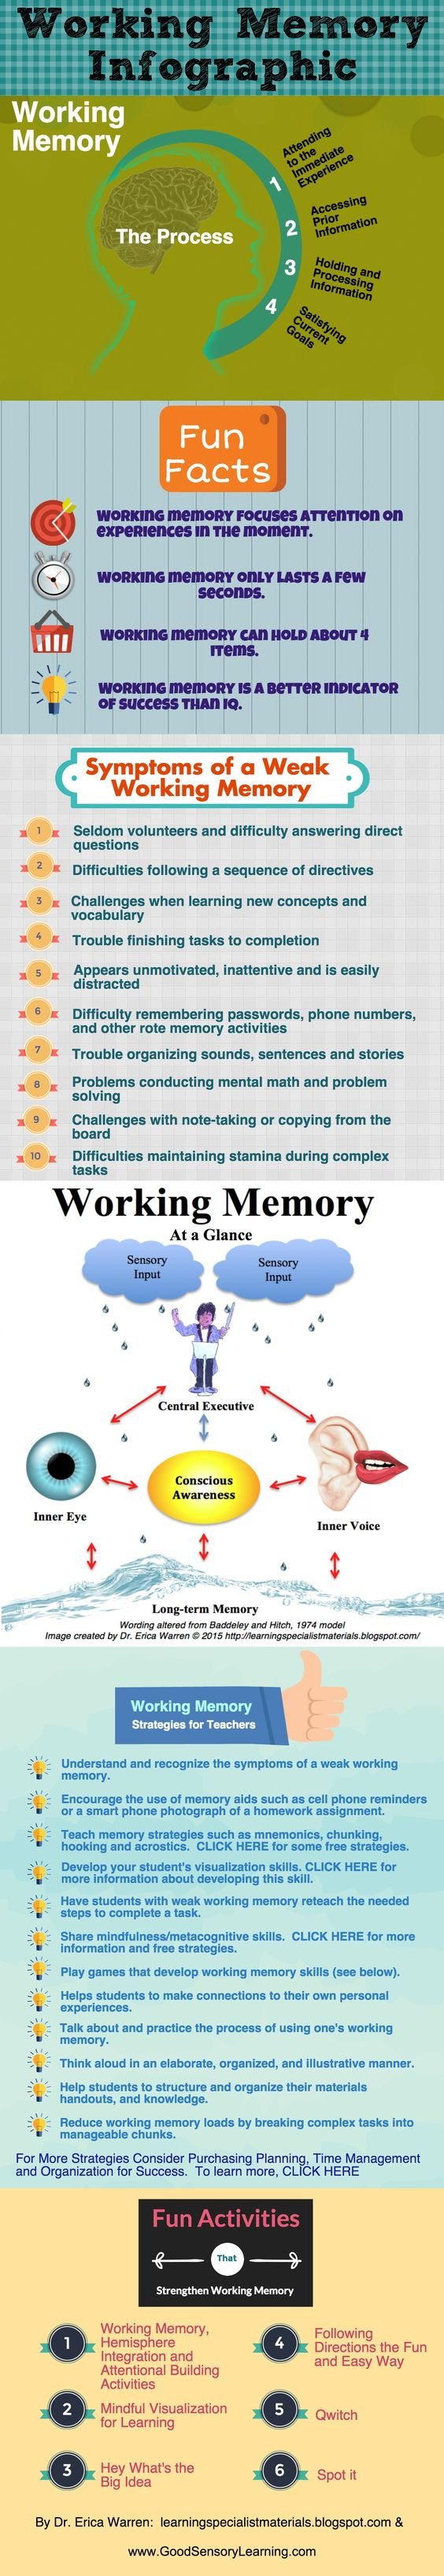 Understanding Working Memory - the process, definition, fun facts, strategies, activities and more.